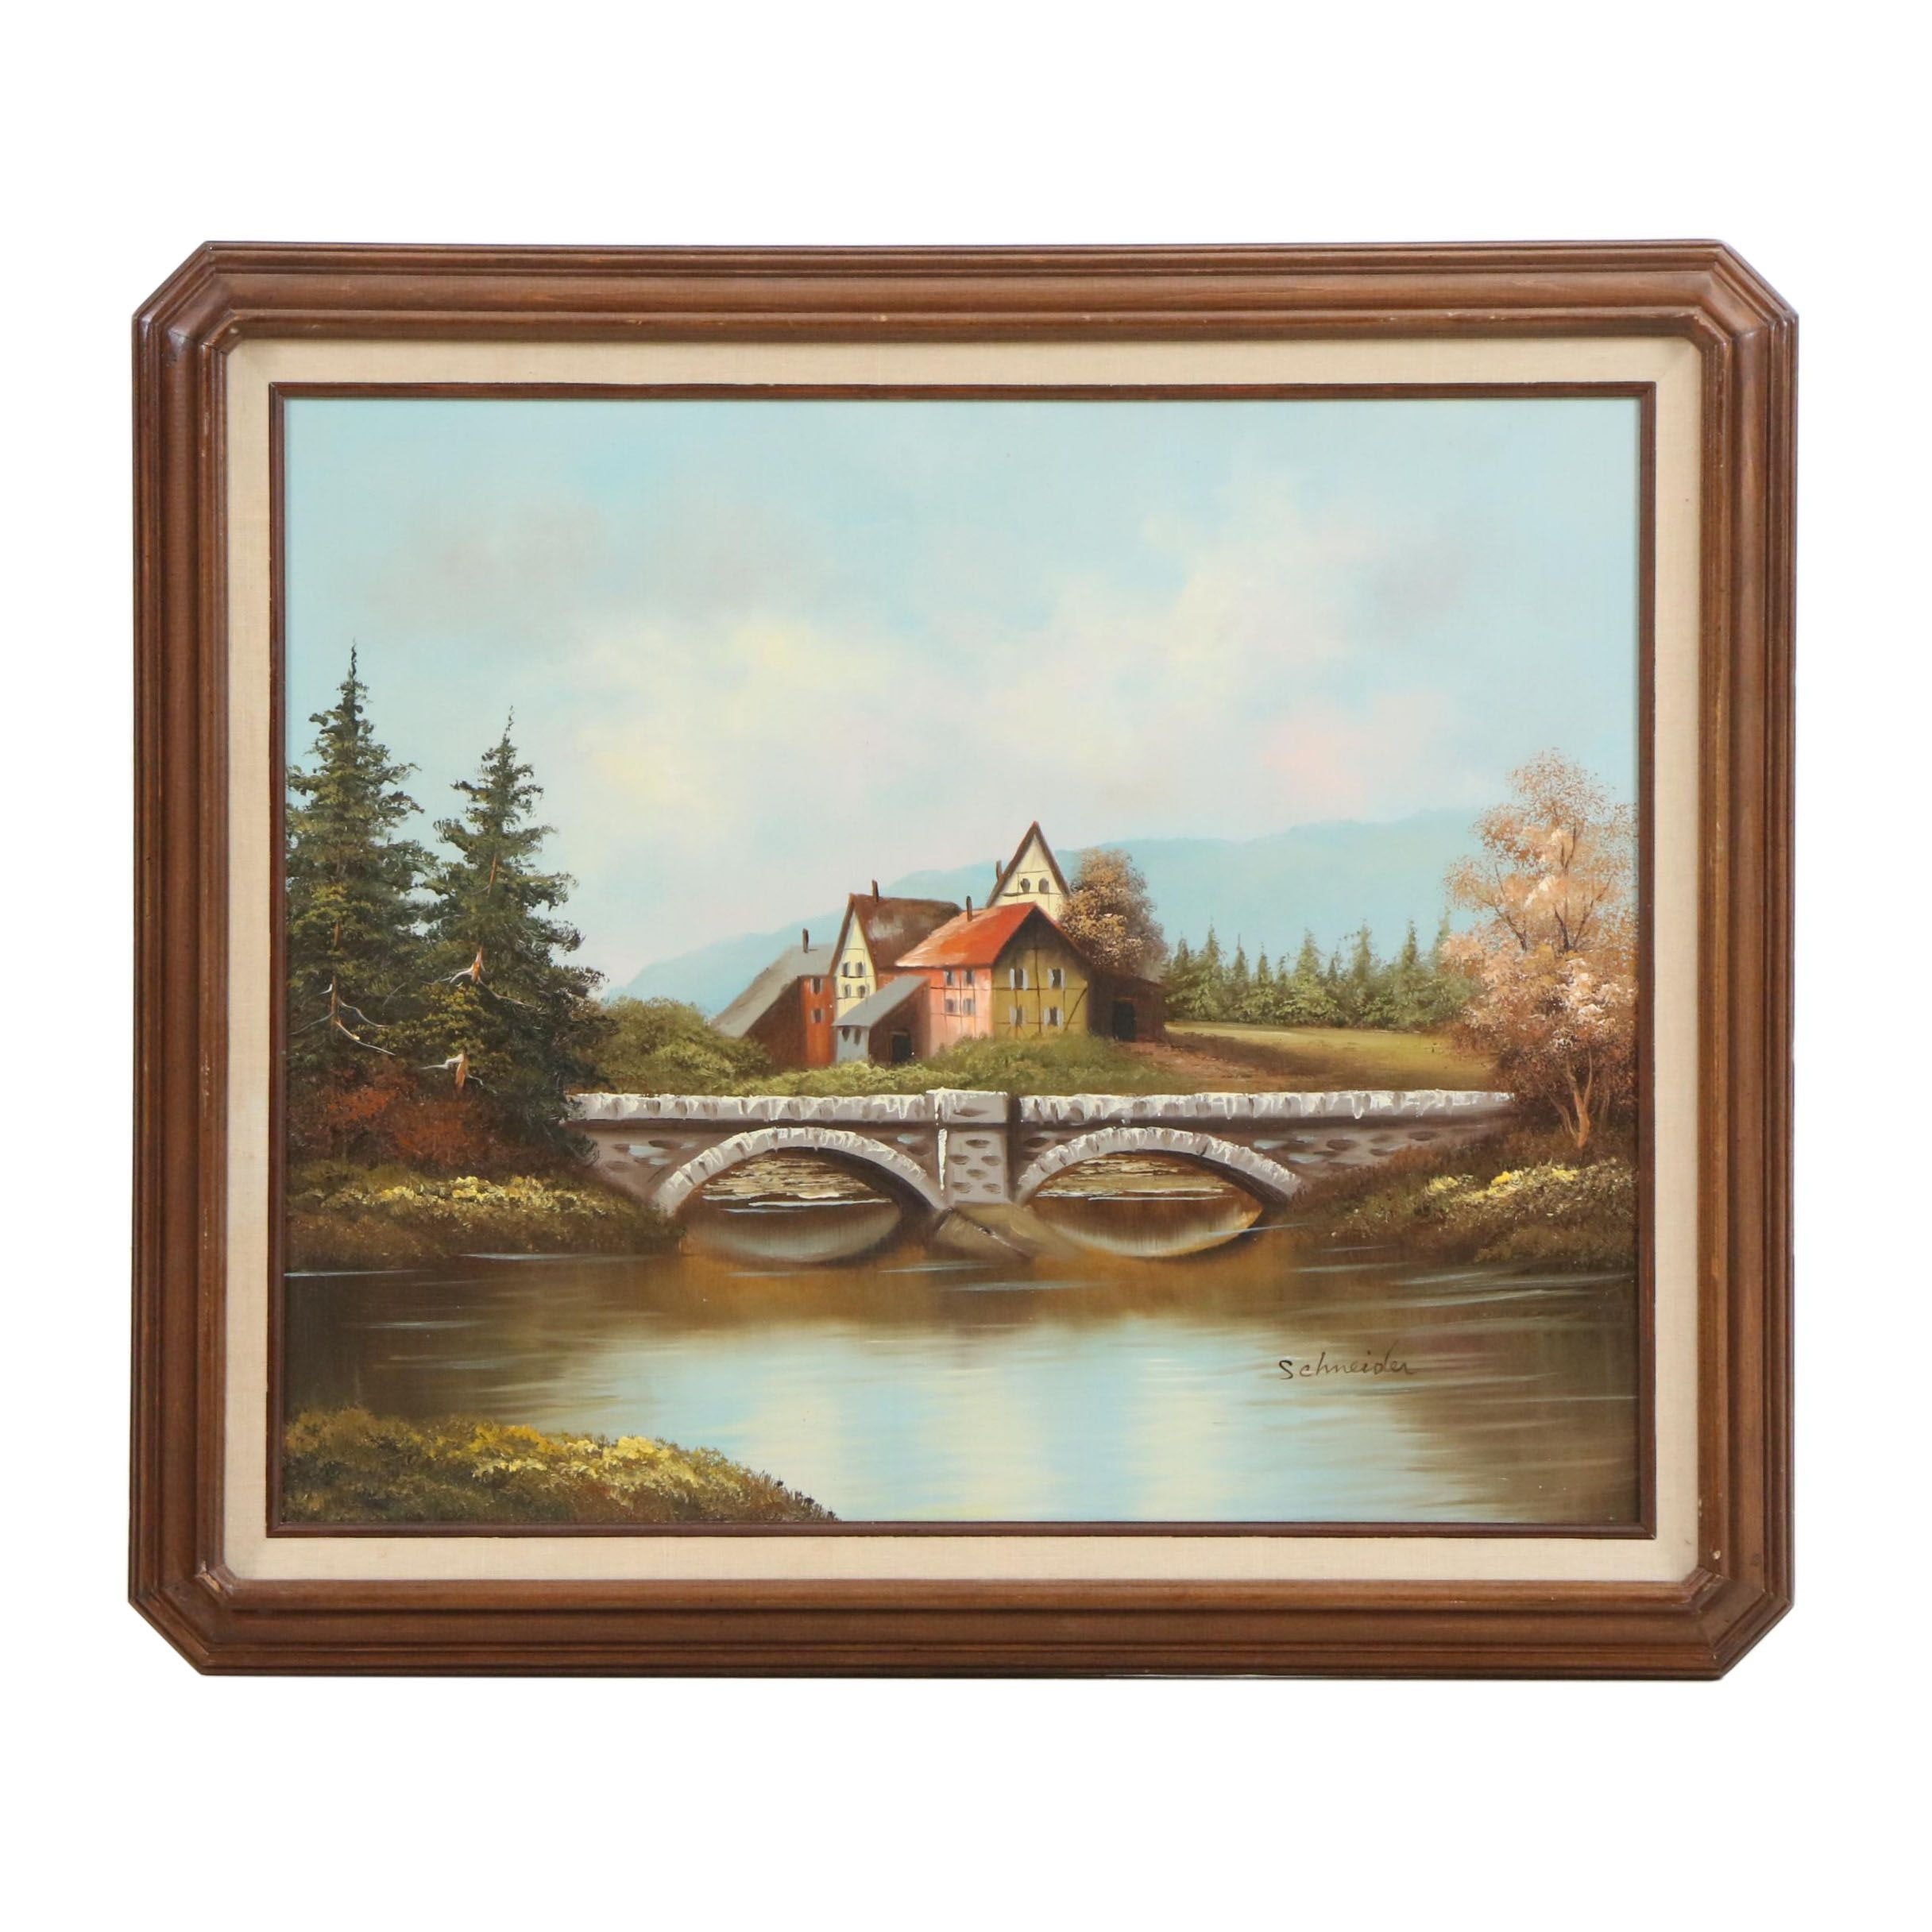 Schneider Naive Style Oil Painting of Landscape